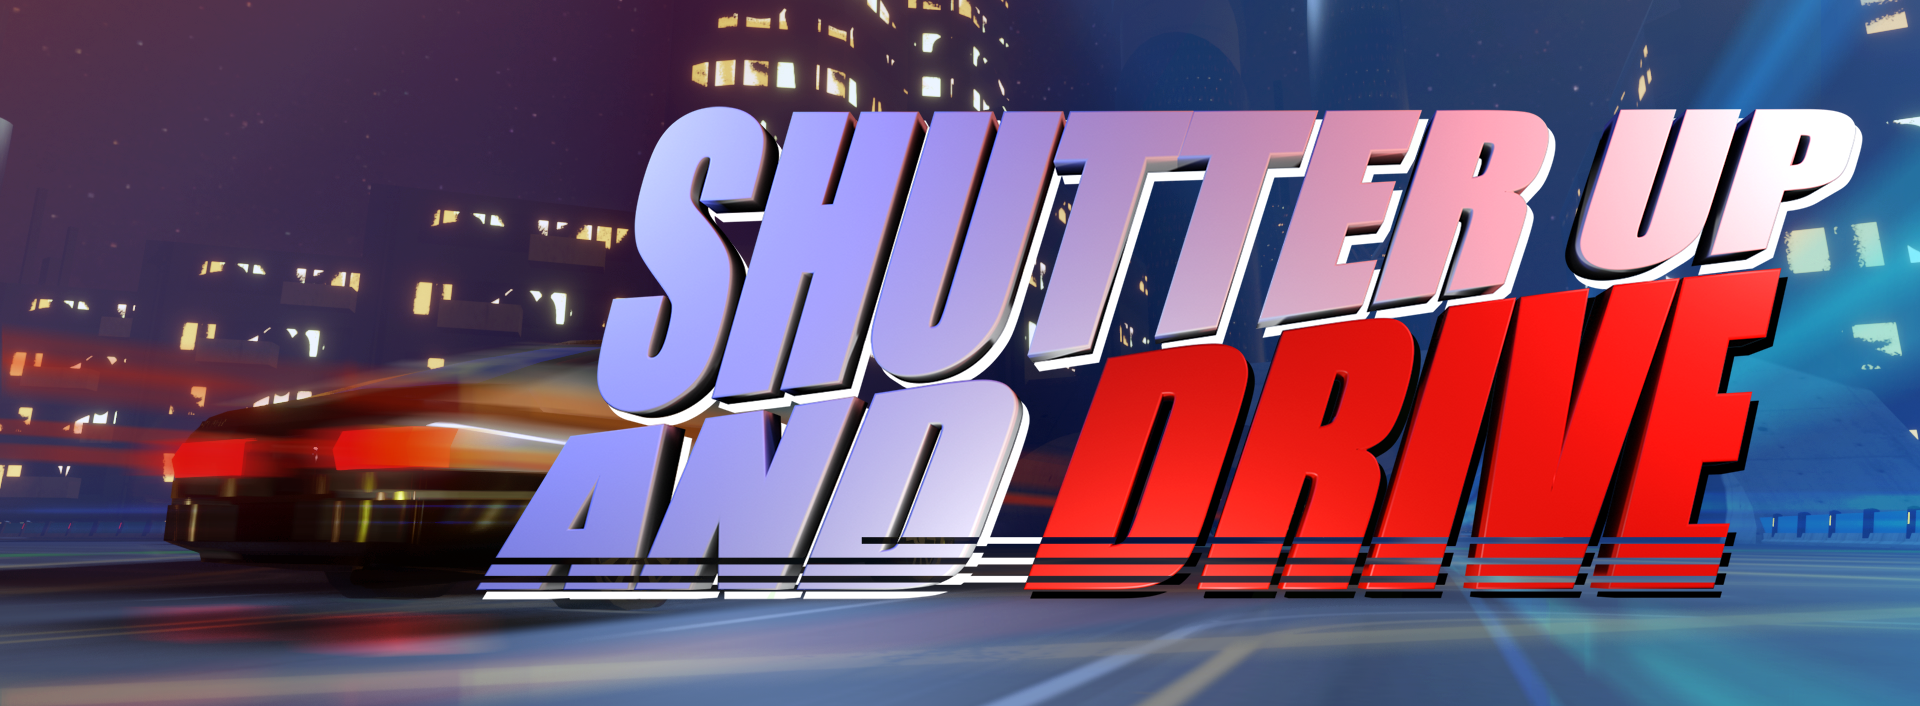 SHUTTER UP AND DRIVE